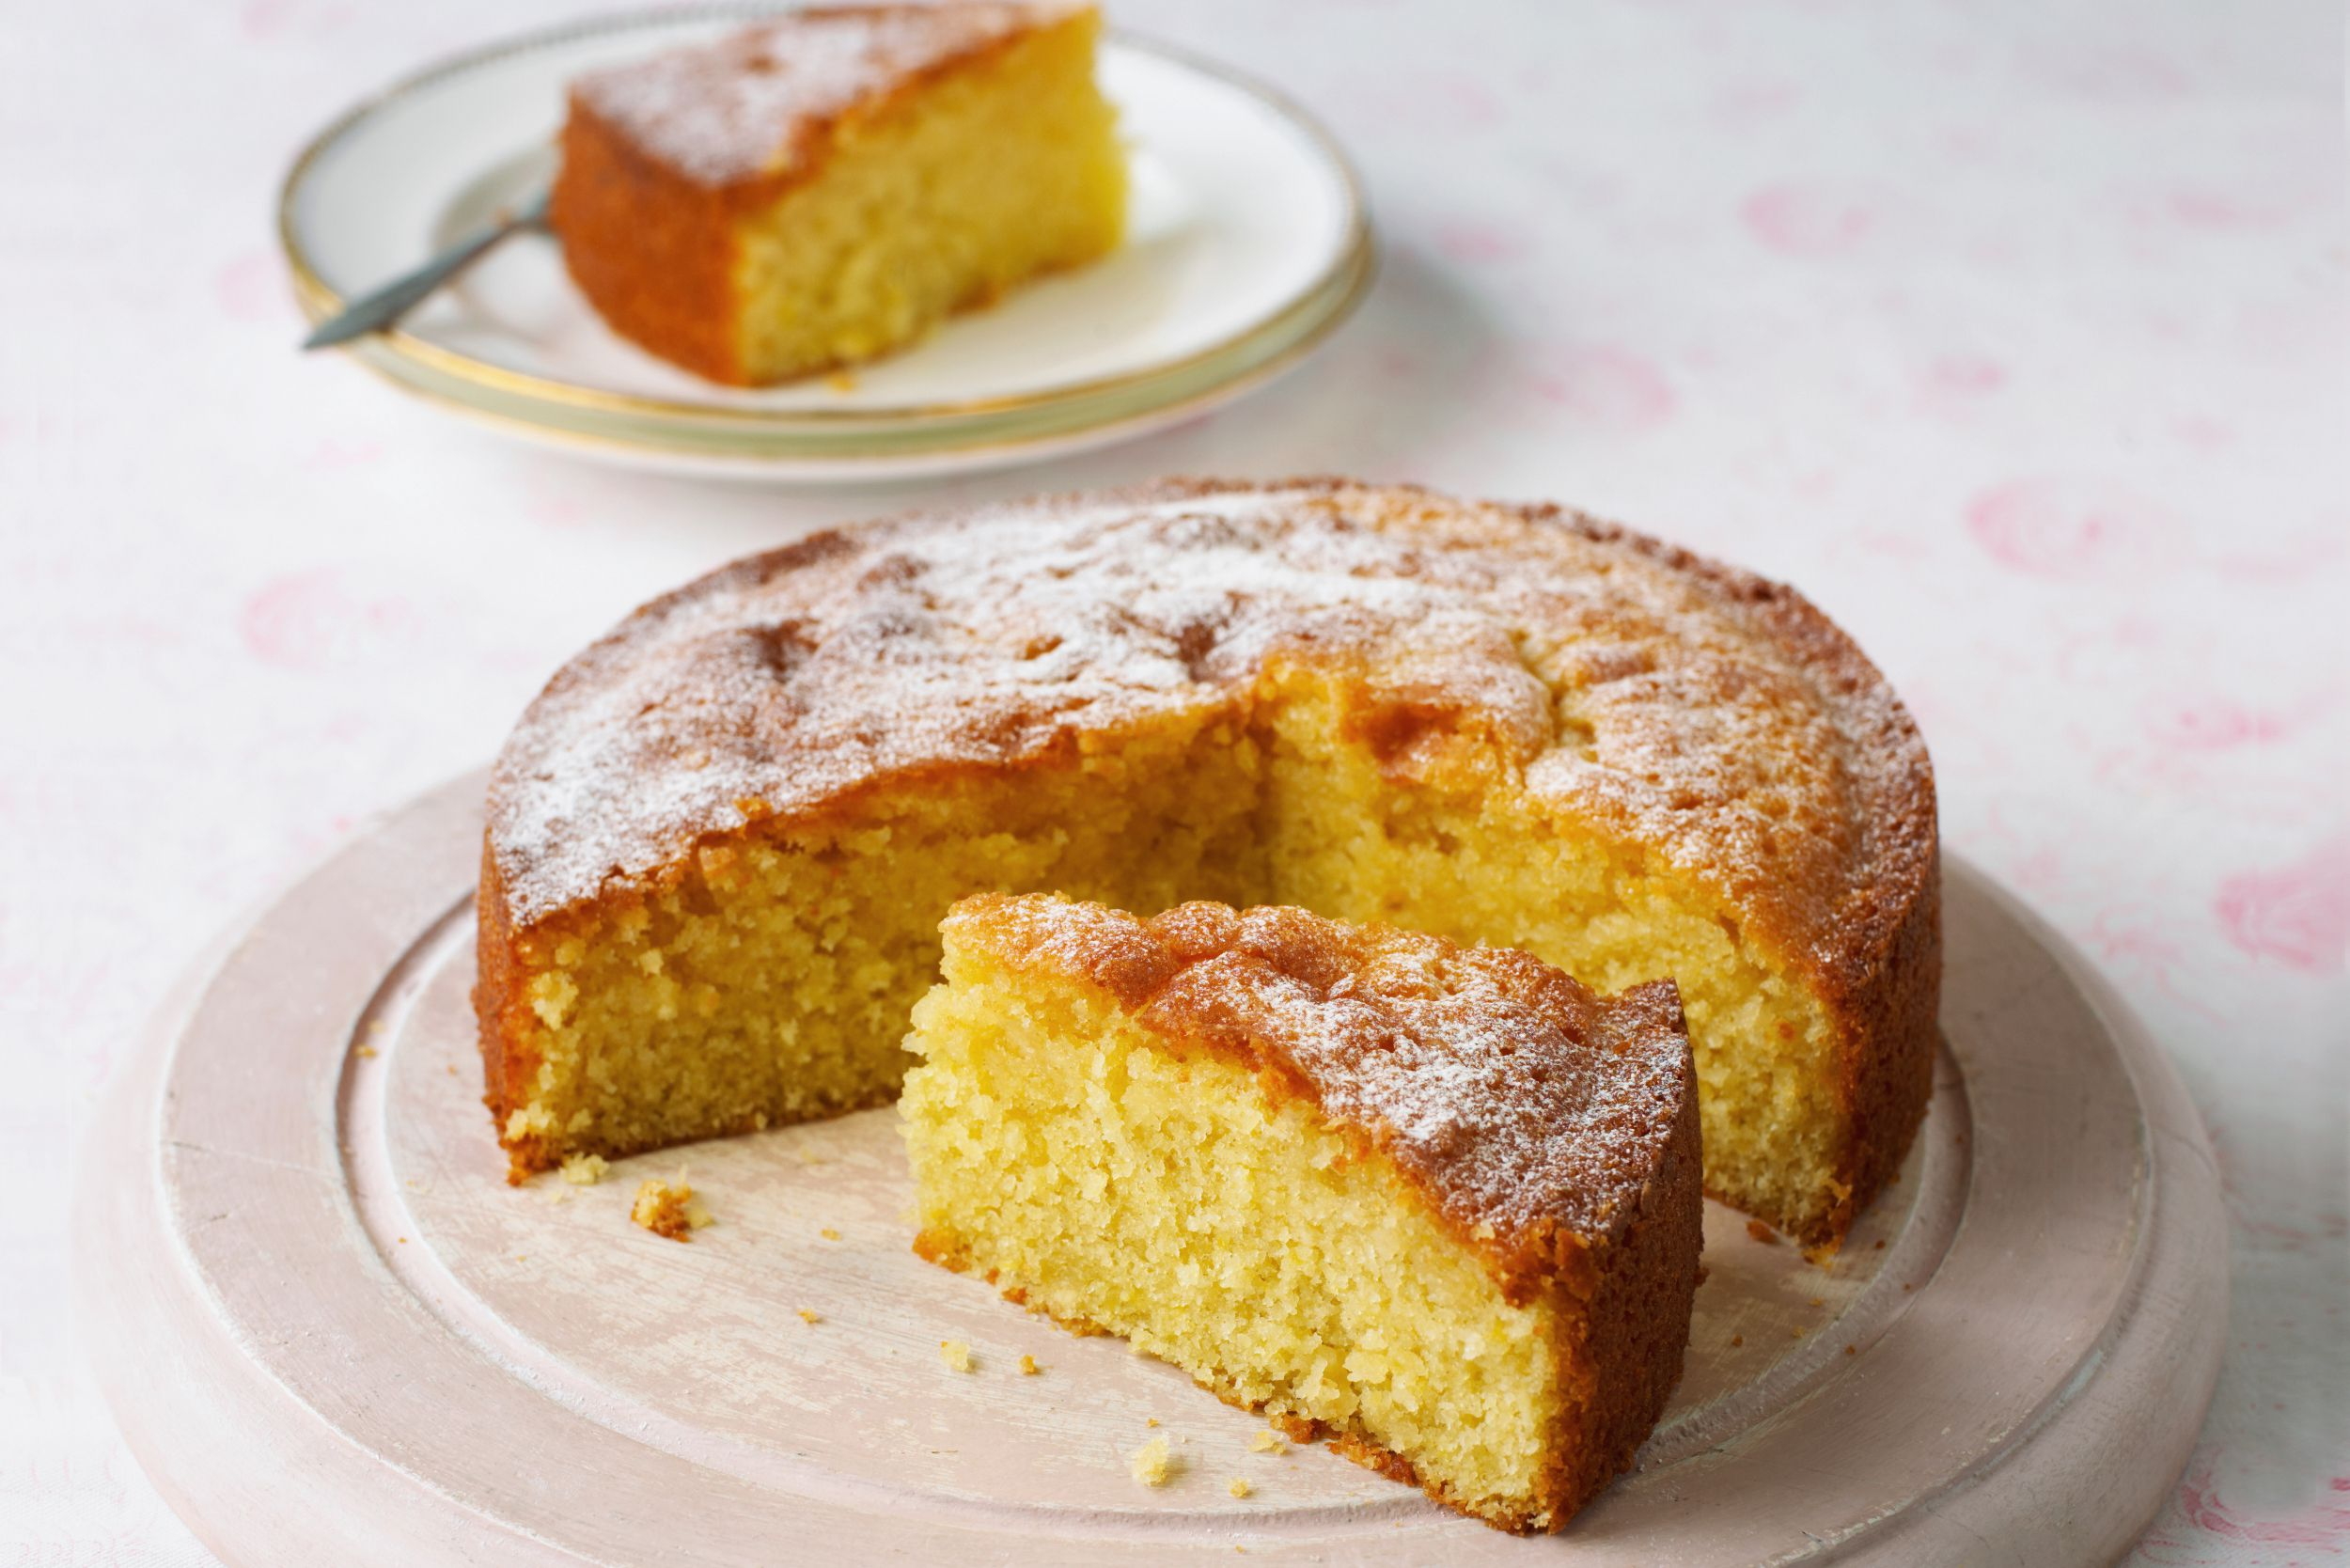 Everyone should know how to bake a cake for How to bake a simple cake for beginners